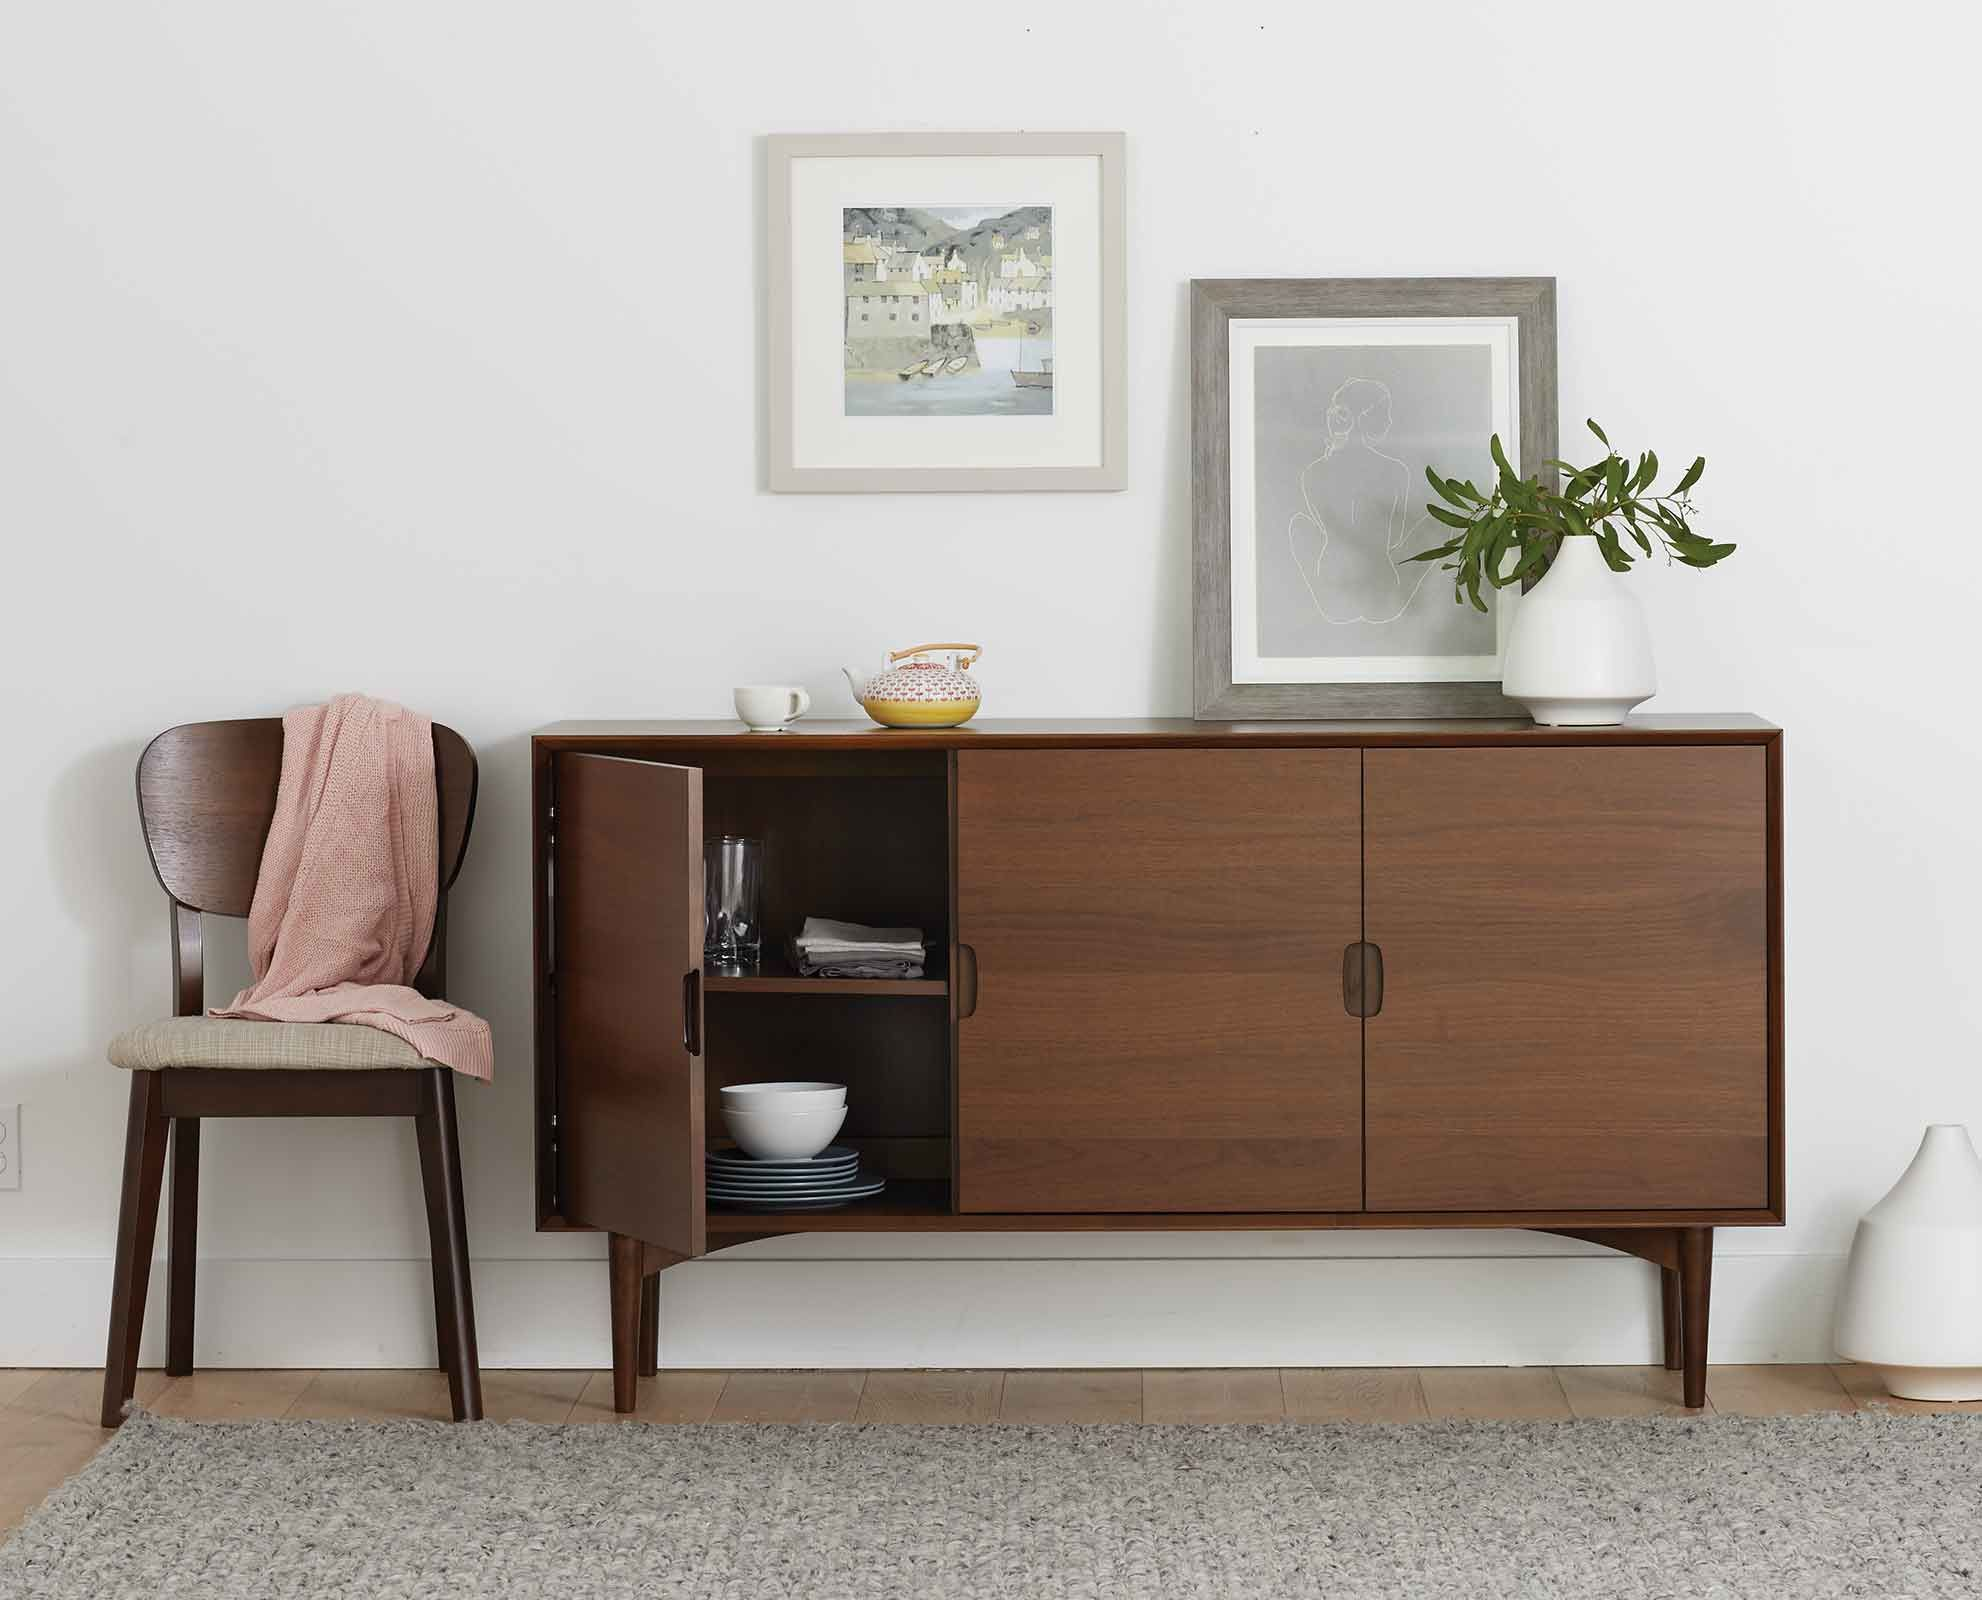 Scandinavian Designs Juneau Sideboard Has A Light Mid Century Look With Minimalist Living Room Decor Scandinavian Design Living Room Minimalist Living Room